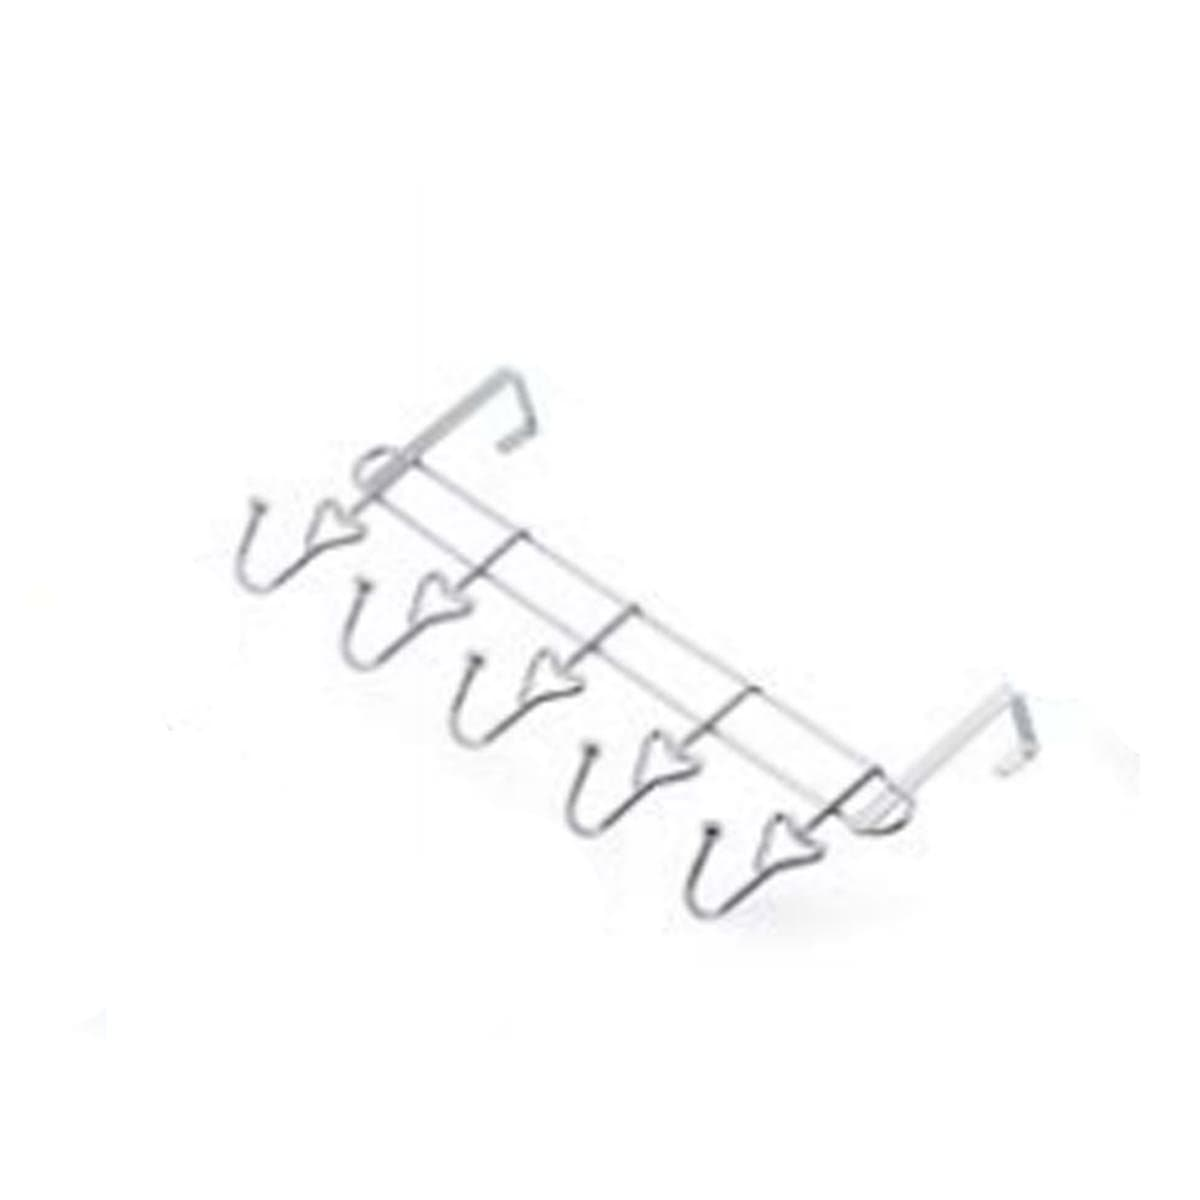 NB625 5 Hooks Stainless Steel Line Hook W/Door Clip